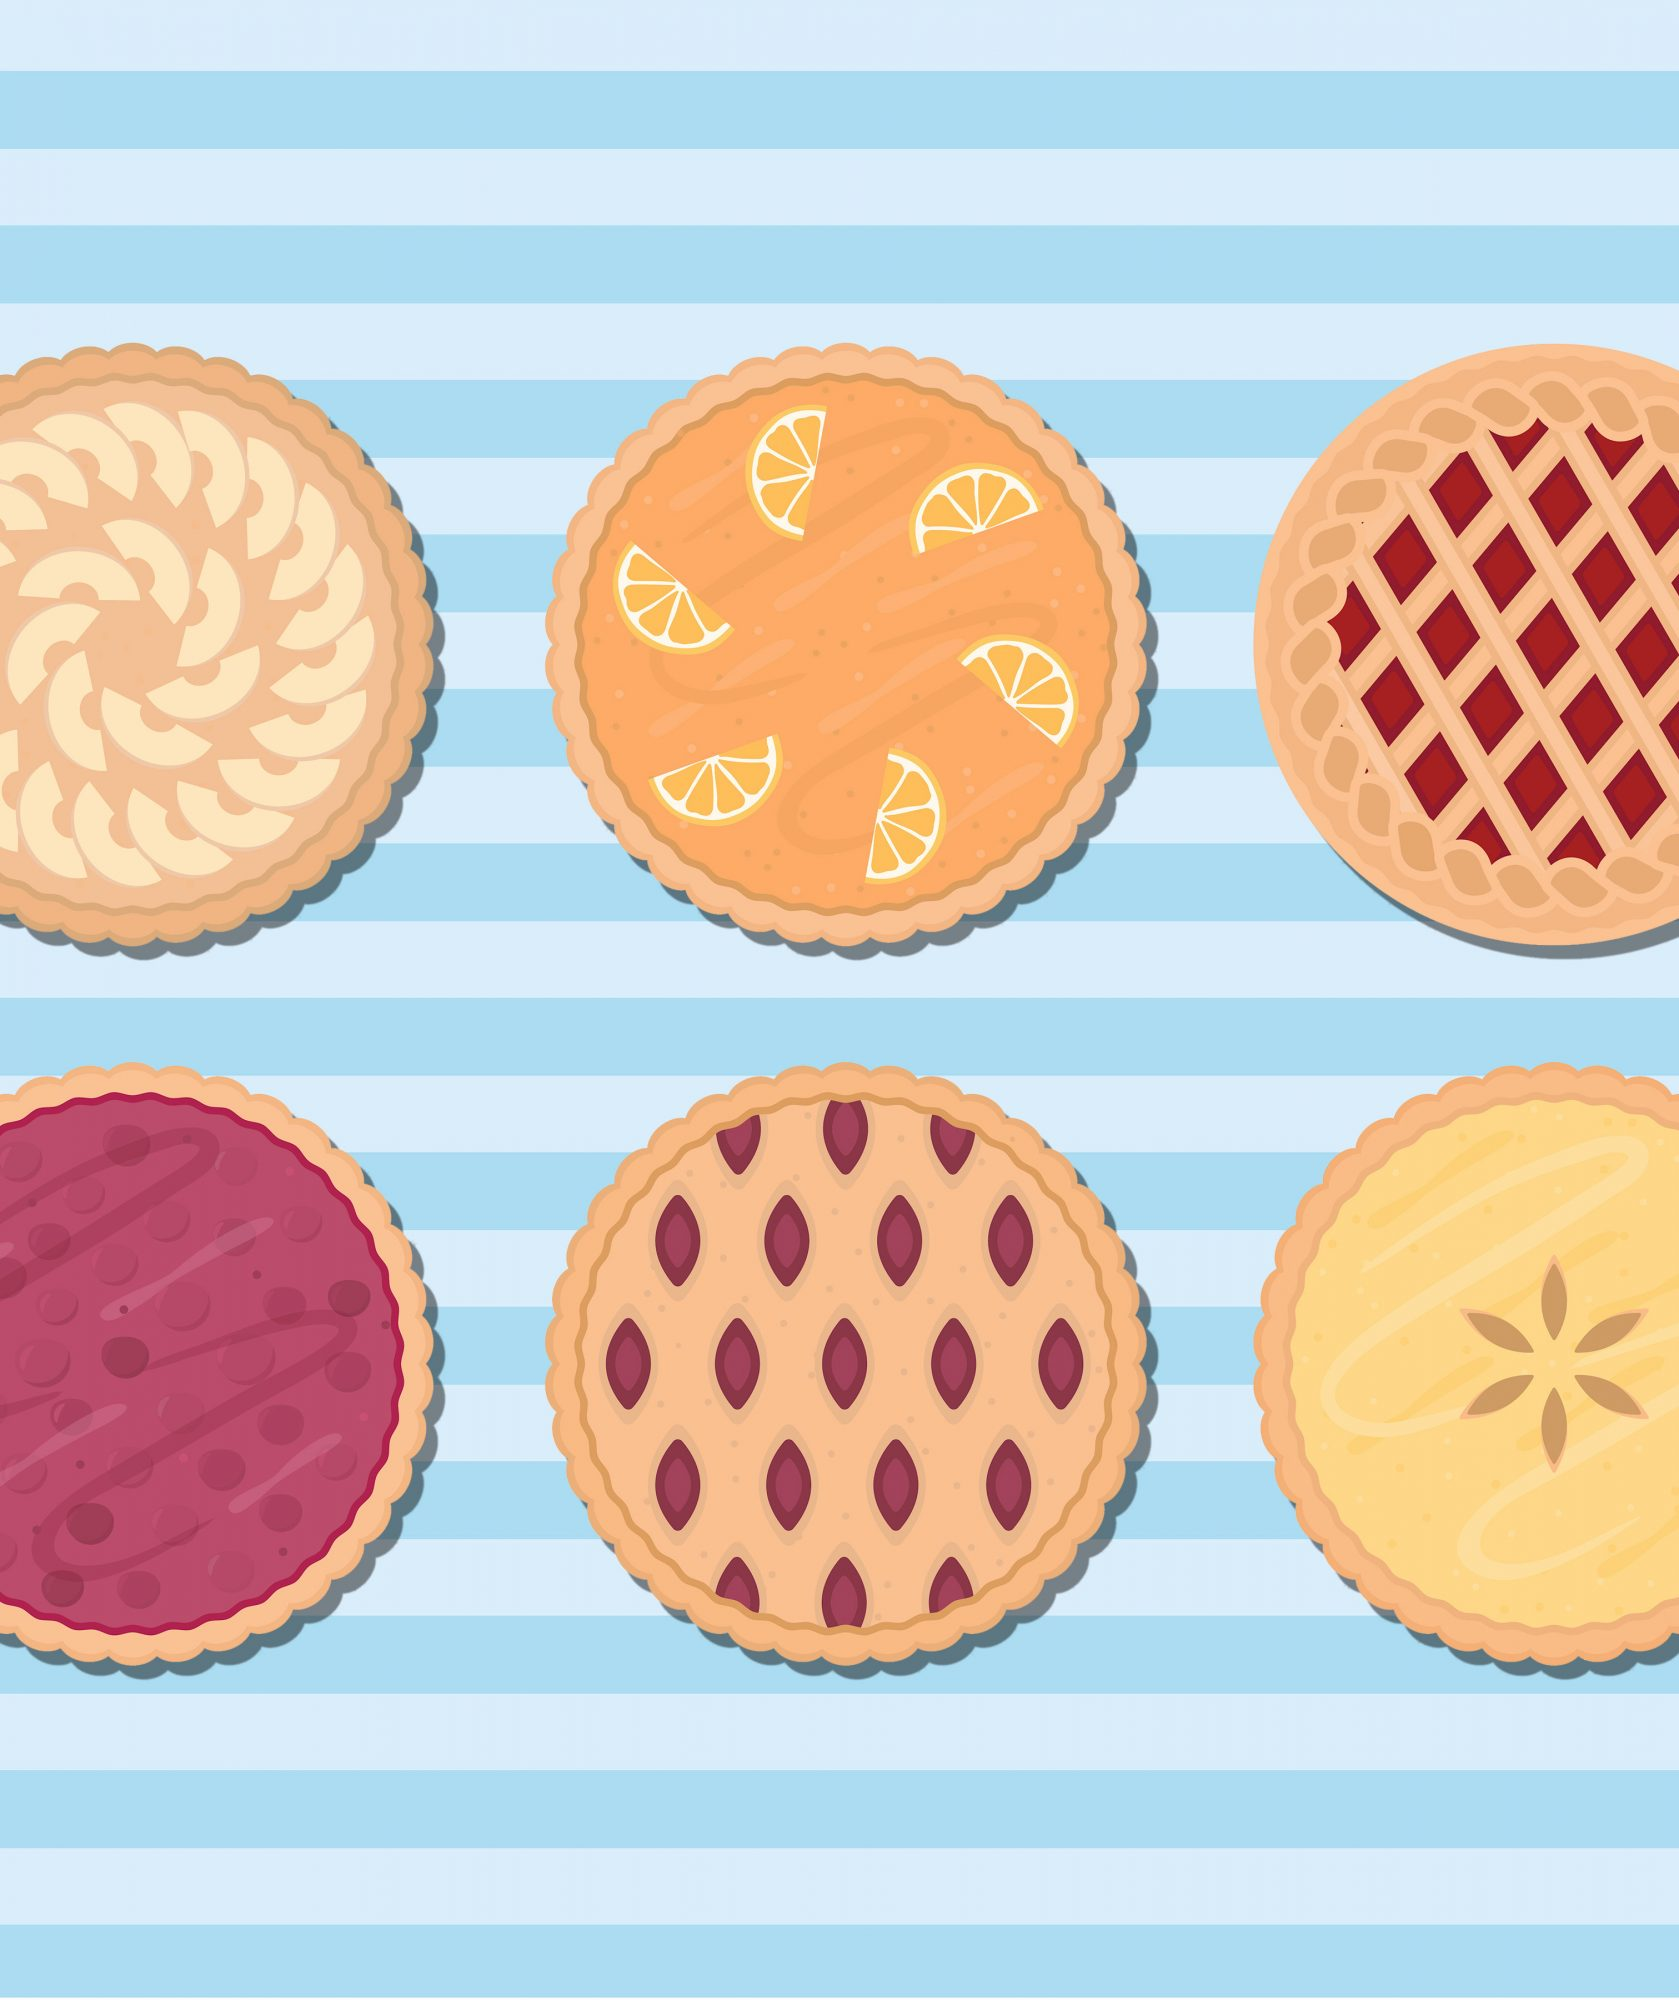 7 Simple Steps forBakingthe Perfect Pie Every Time